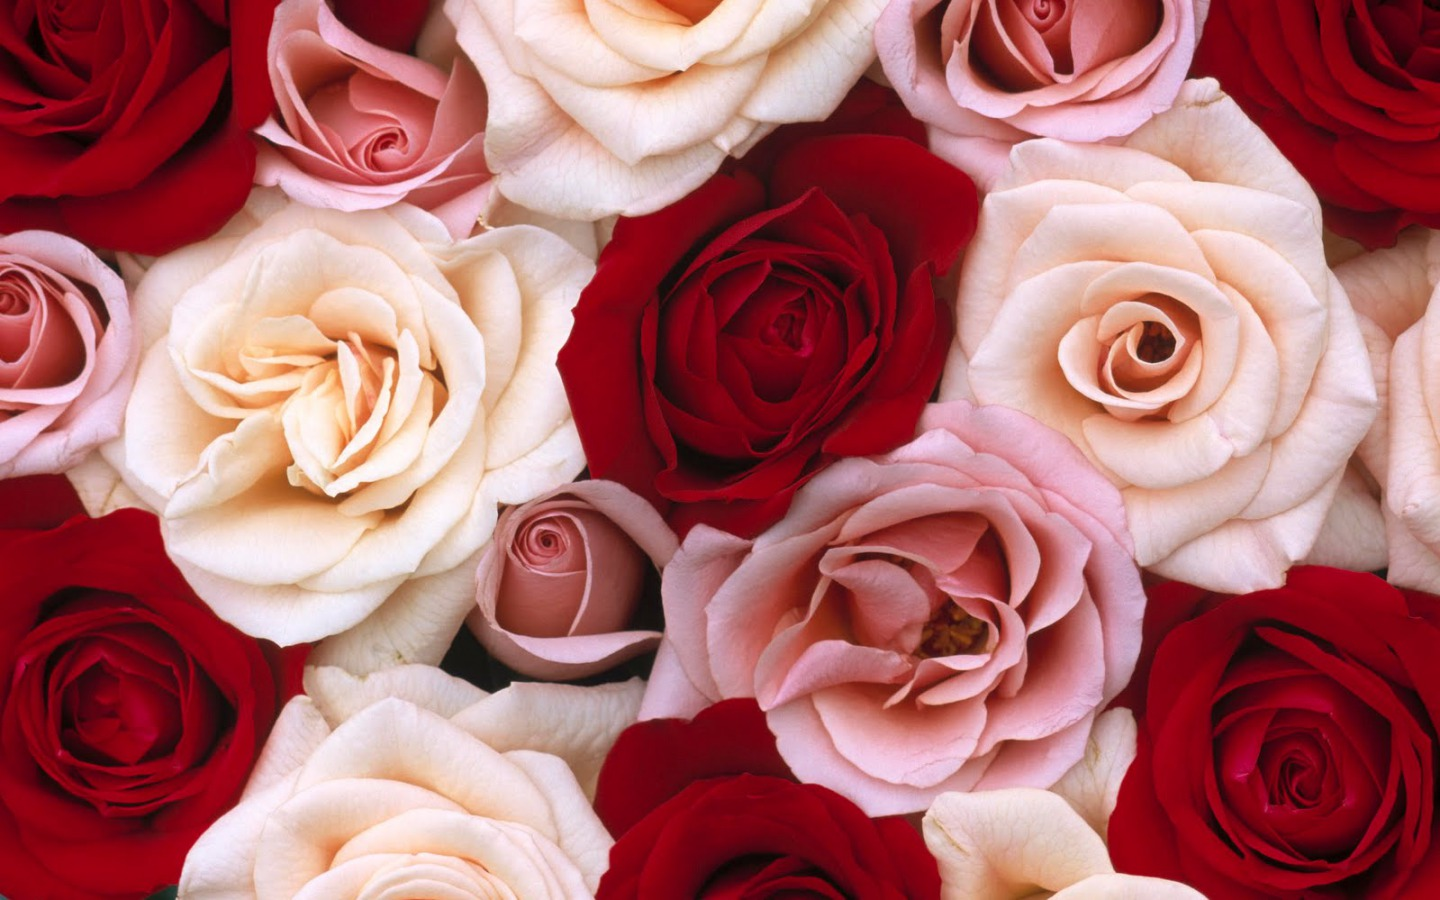 Flowers Images Roses HD Wallpaper And Background Photos